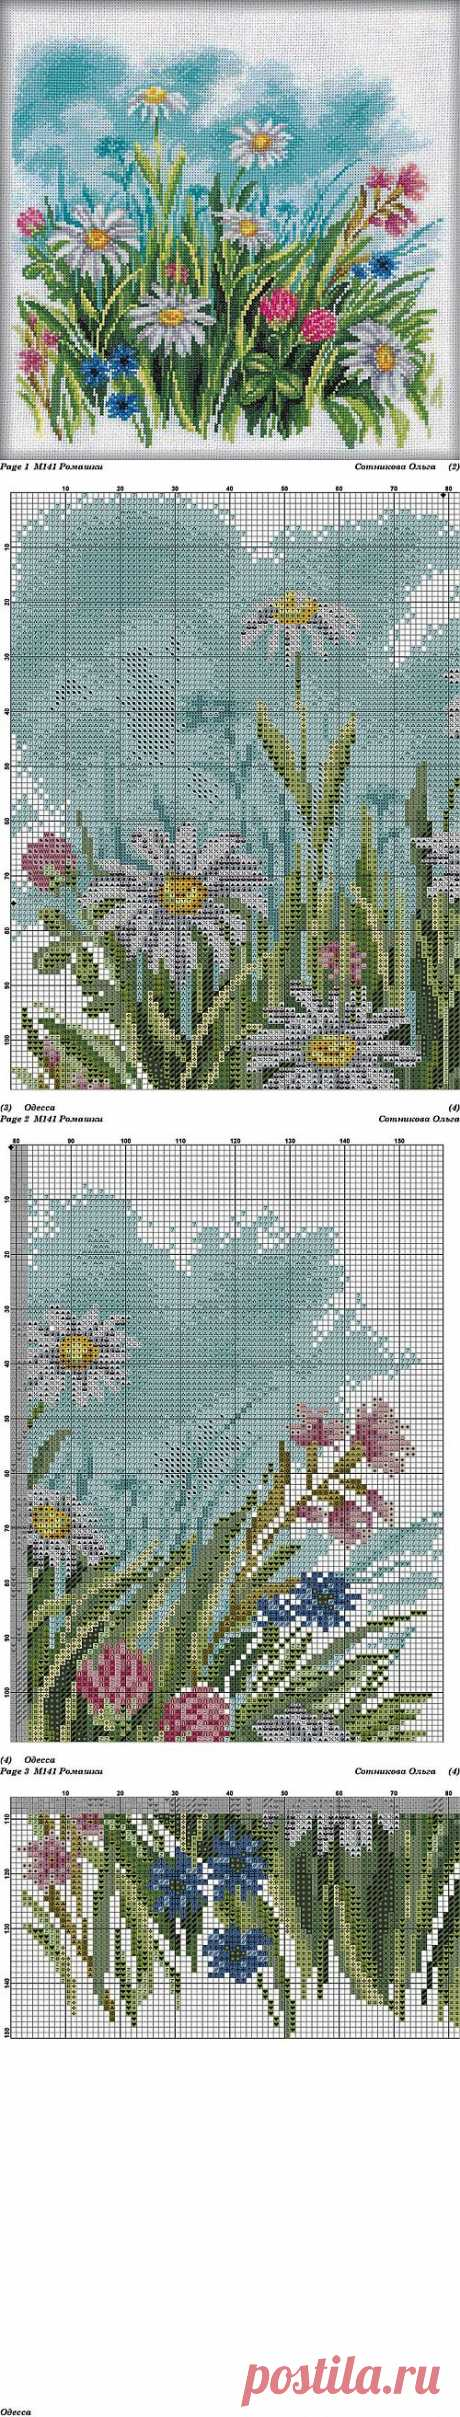 Embroidery designs flowers. Hand embroidery patterns | Laboratory household